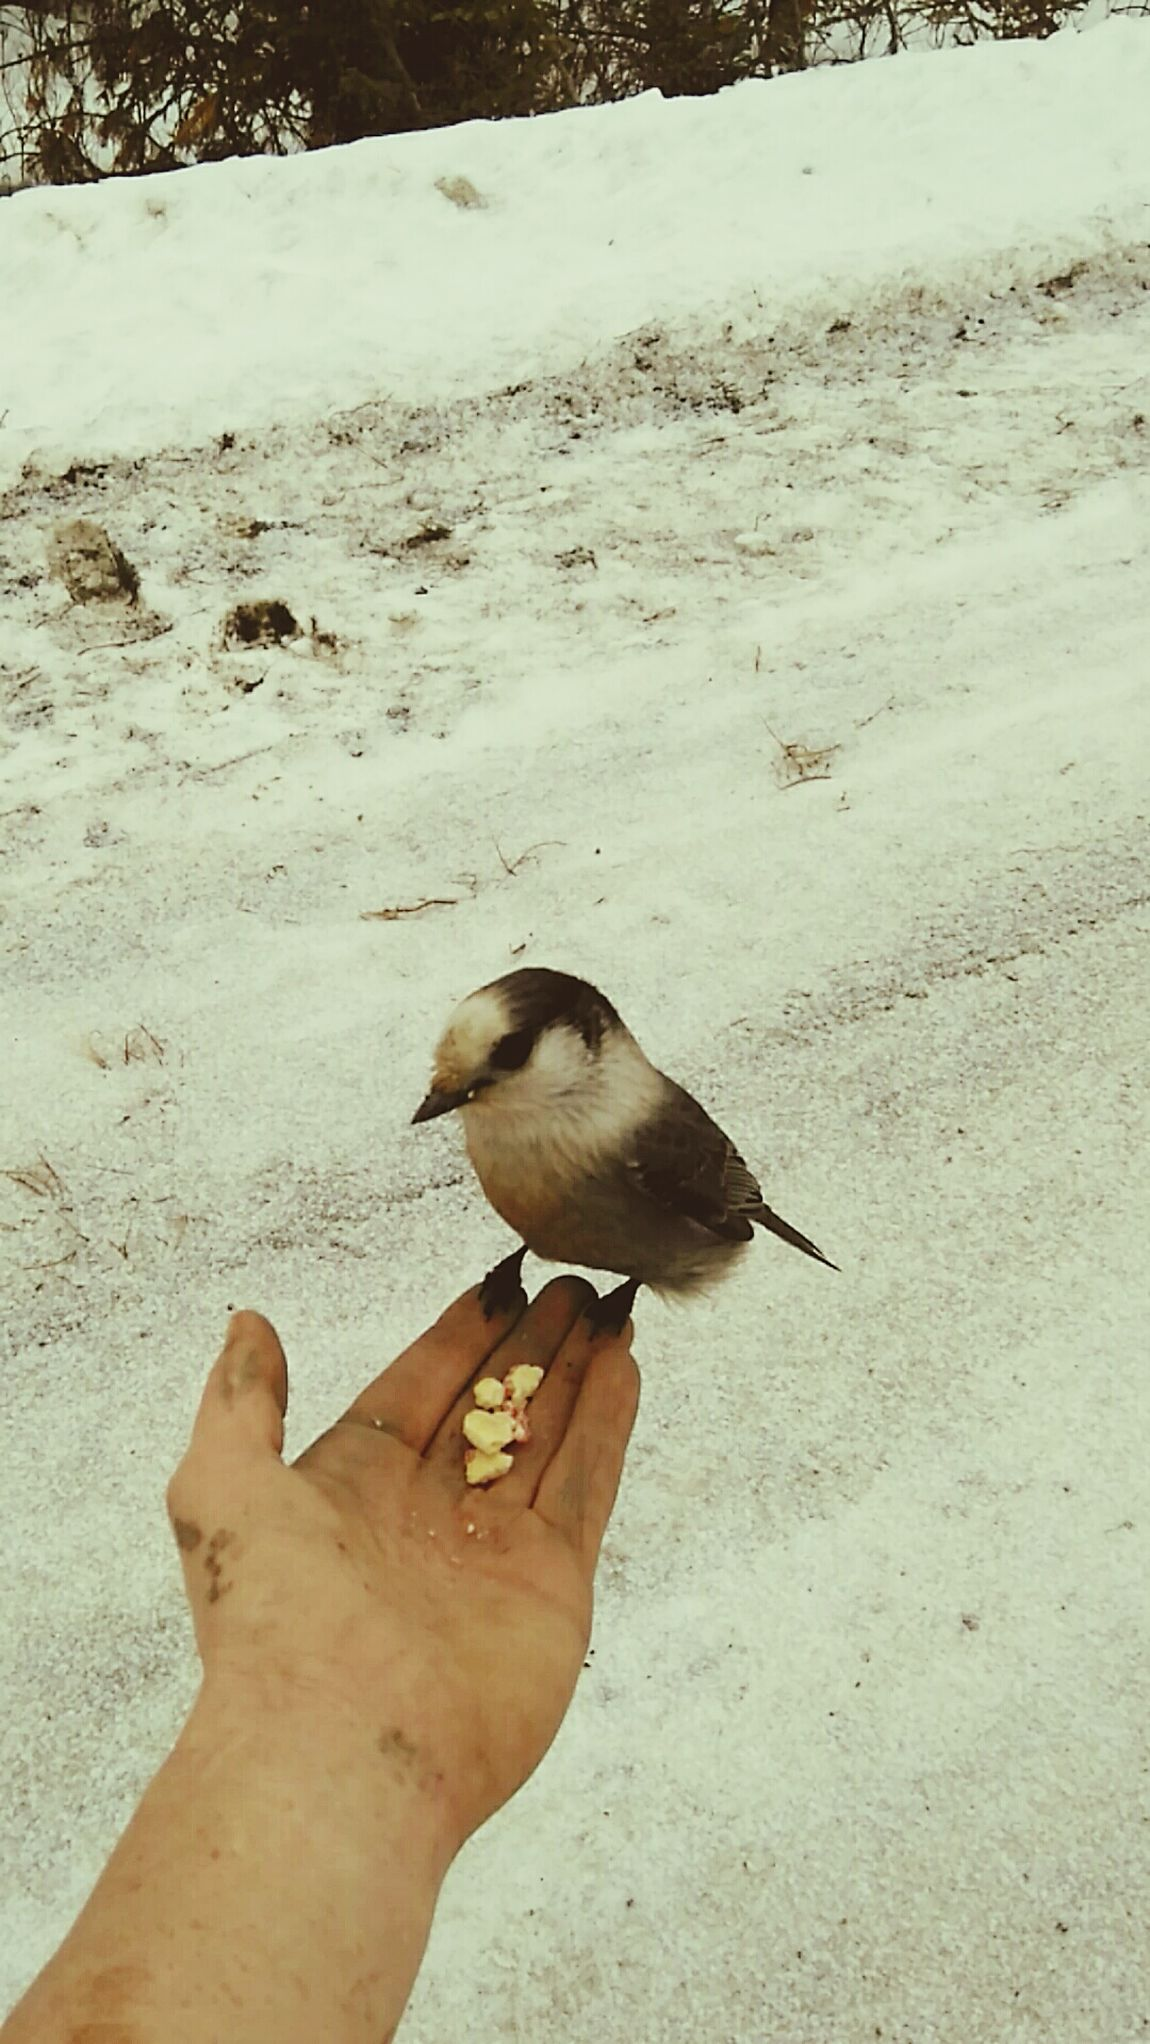 My new lil buddy........lets call him..... Winston lol Human Hand Animals In The Wild One Person Animal Wildlife Perching Close-up Nature Outdoors Real People New Friend ! The Great Outdoors Workplace Fun Nature's Diversities Check This Out Relaxation Enjoying The Moment Country Life Enjoying Life Healthy Living Taking Photos Peaceful Place Relaxing Beauty In Nature Knowledge From Experience All Natural